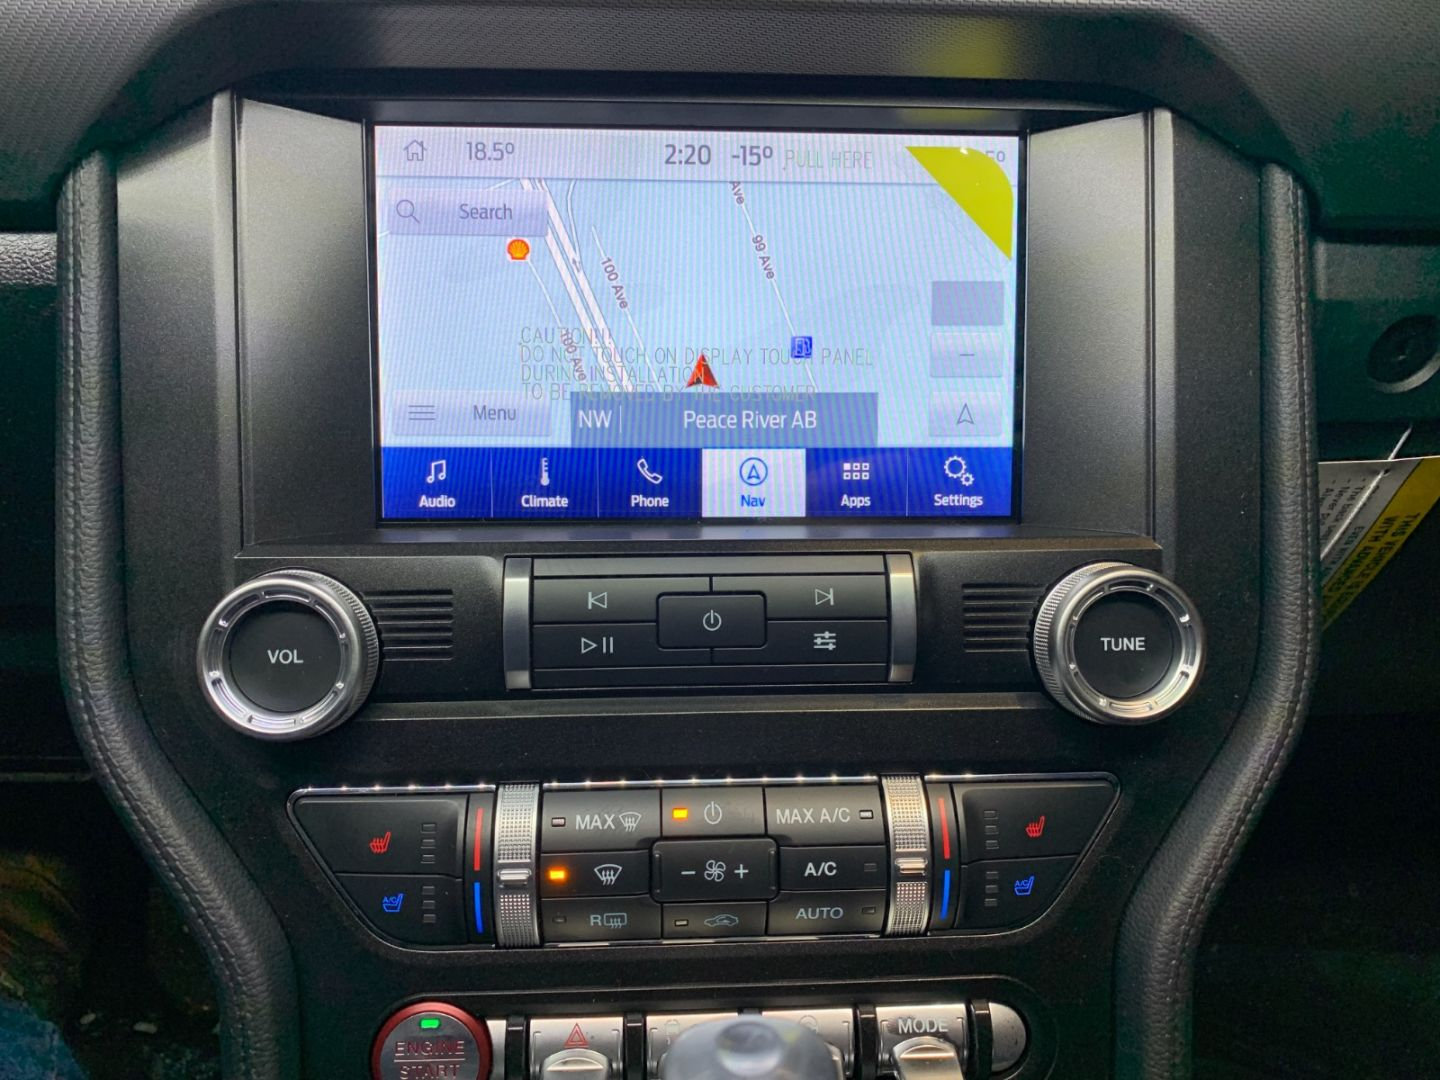 2021 Ford Mustang EcoBoost for sale in Peace River, Alberta